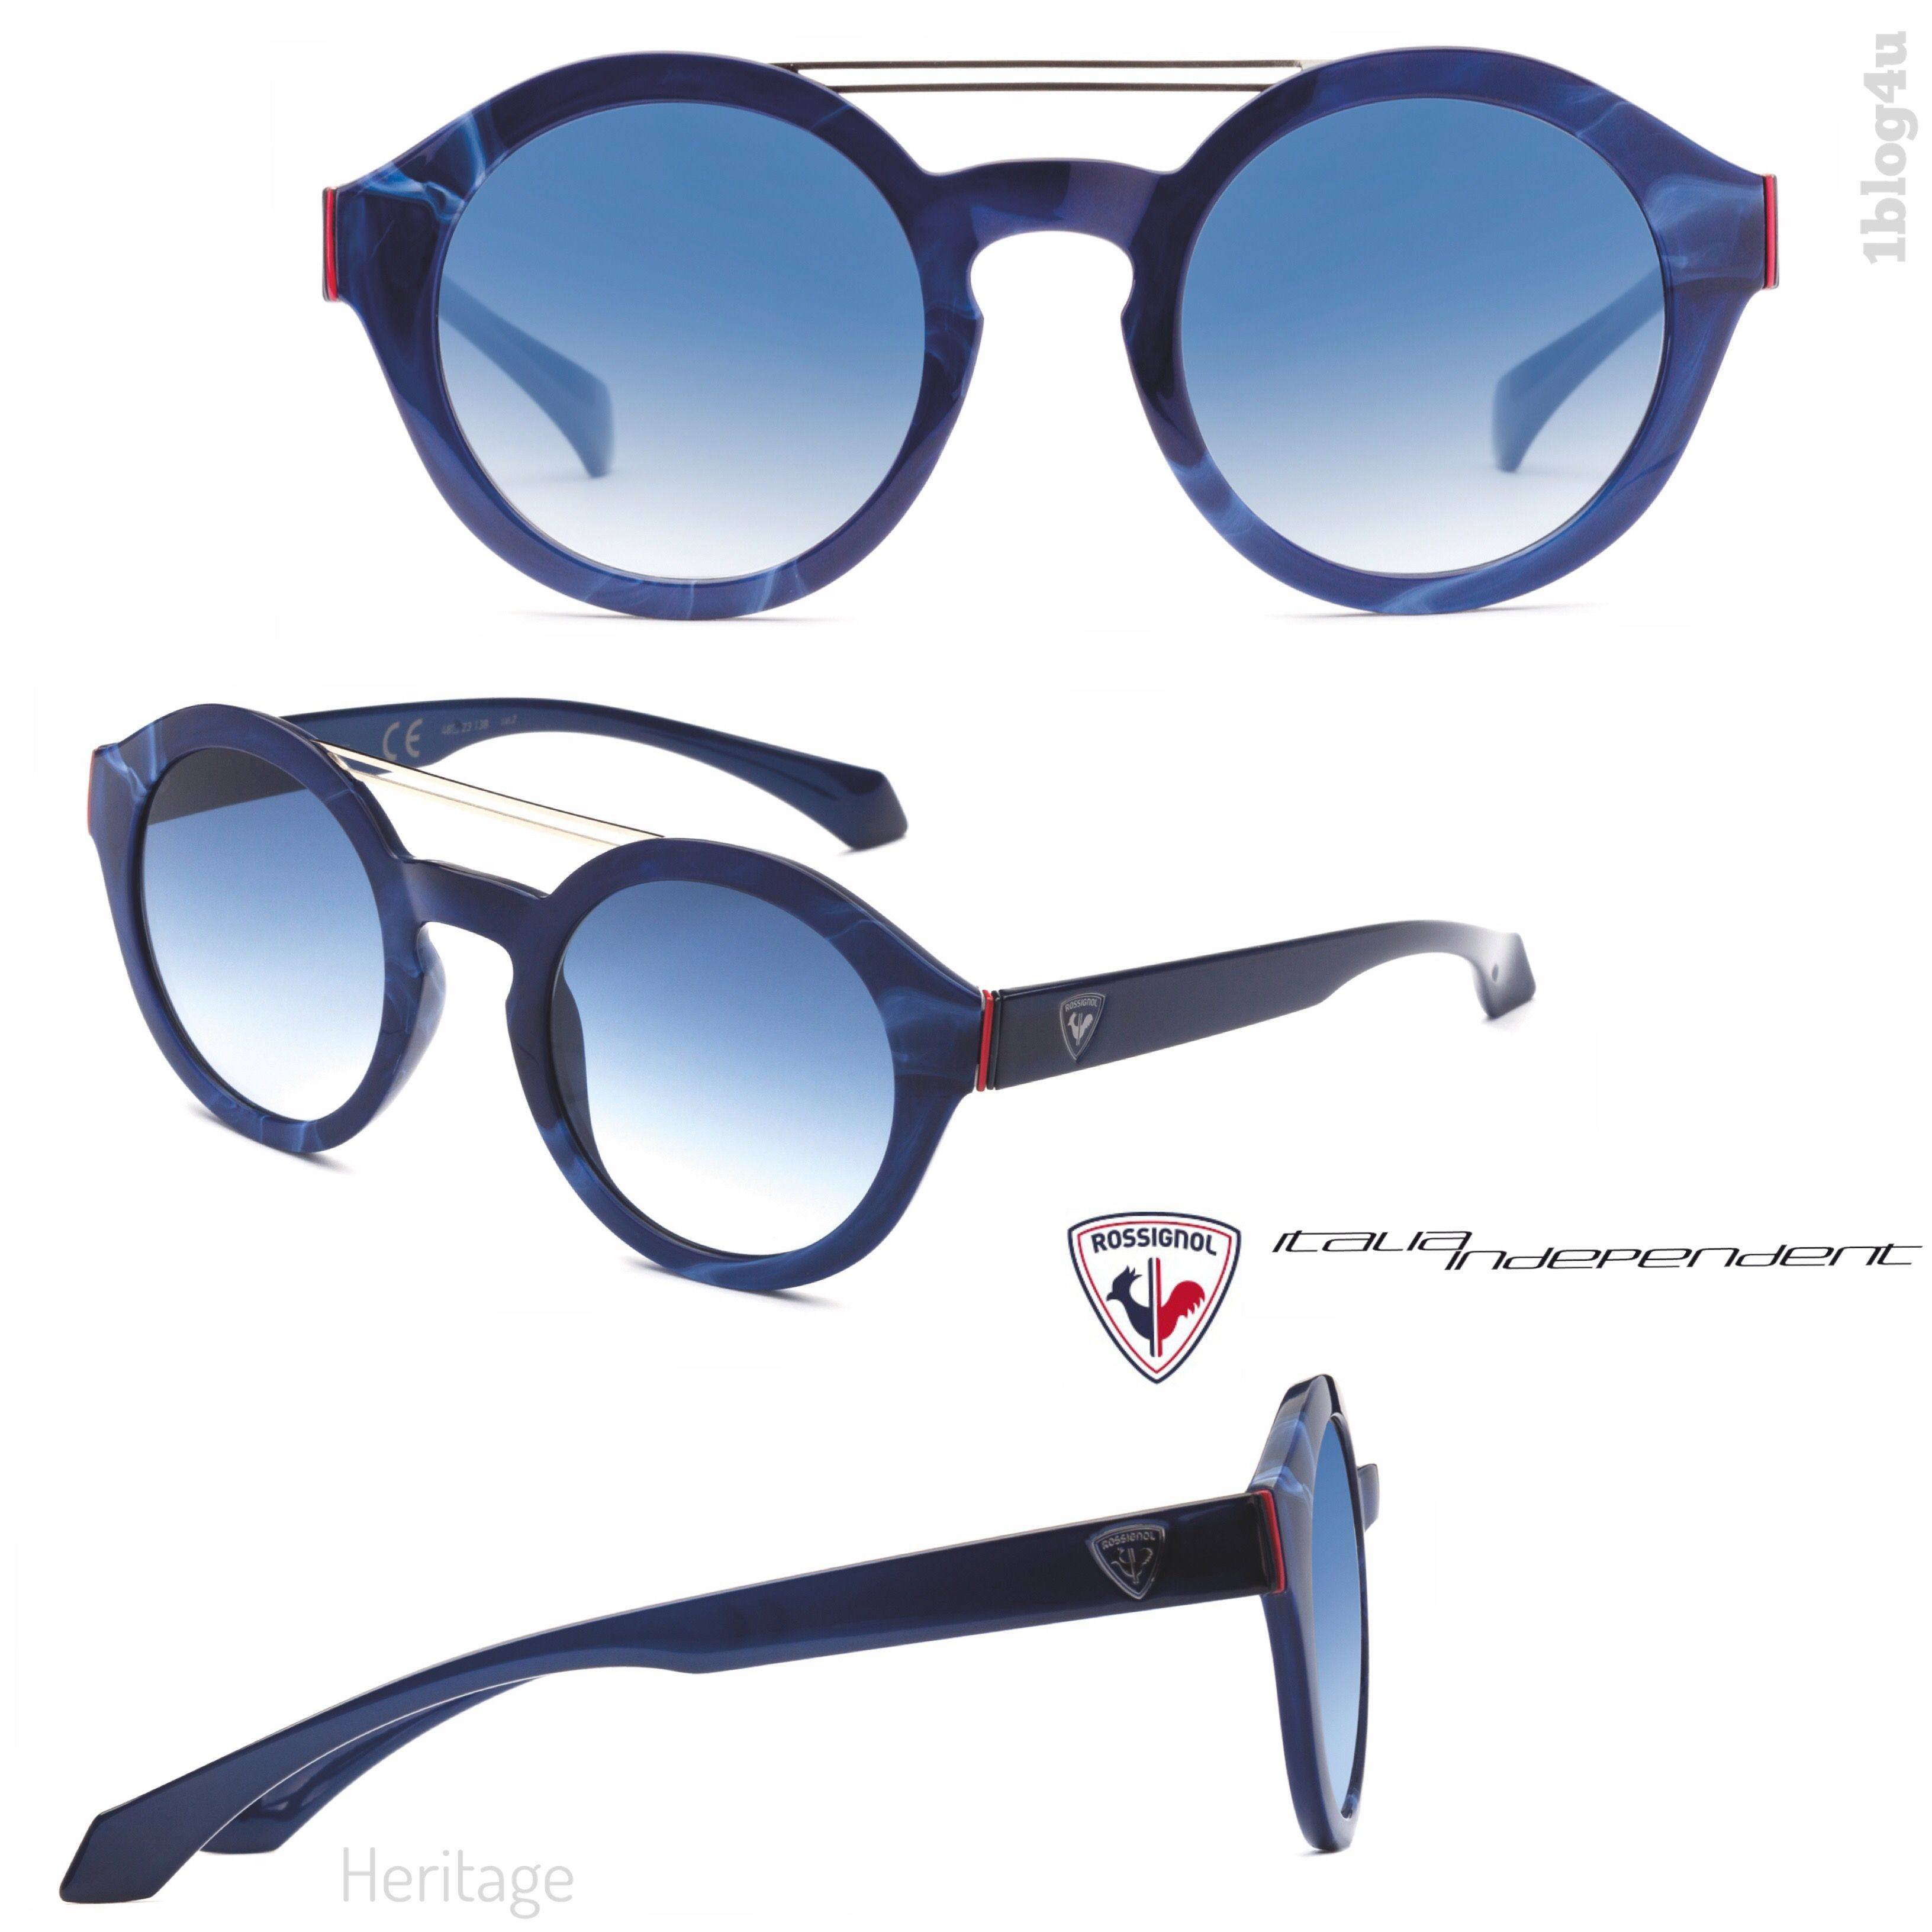 957db73a44  ROSSIGNOL  Eyewear  collection made in co-branding with  Italia   Independent -  Rossignol  Apparel  glasses  sunglasses  MadeinItaly   eyewear -  1blog4u ...